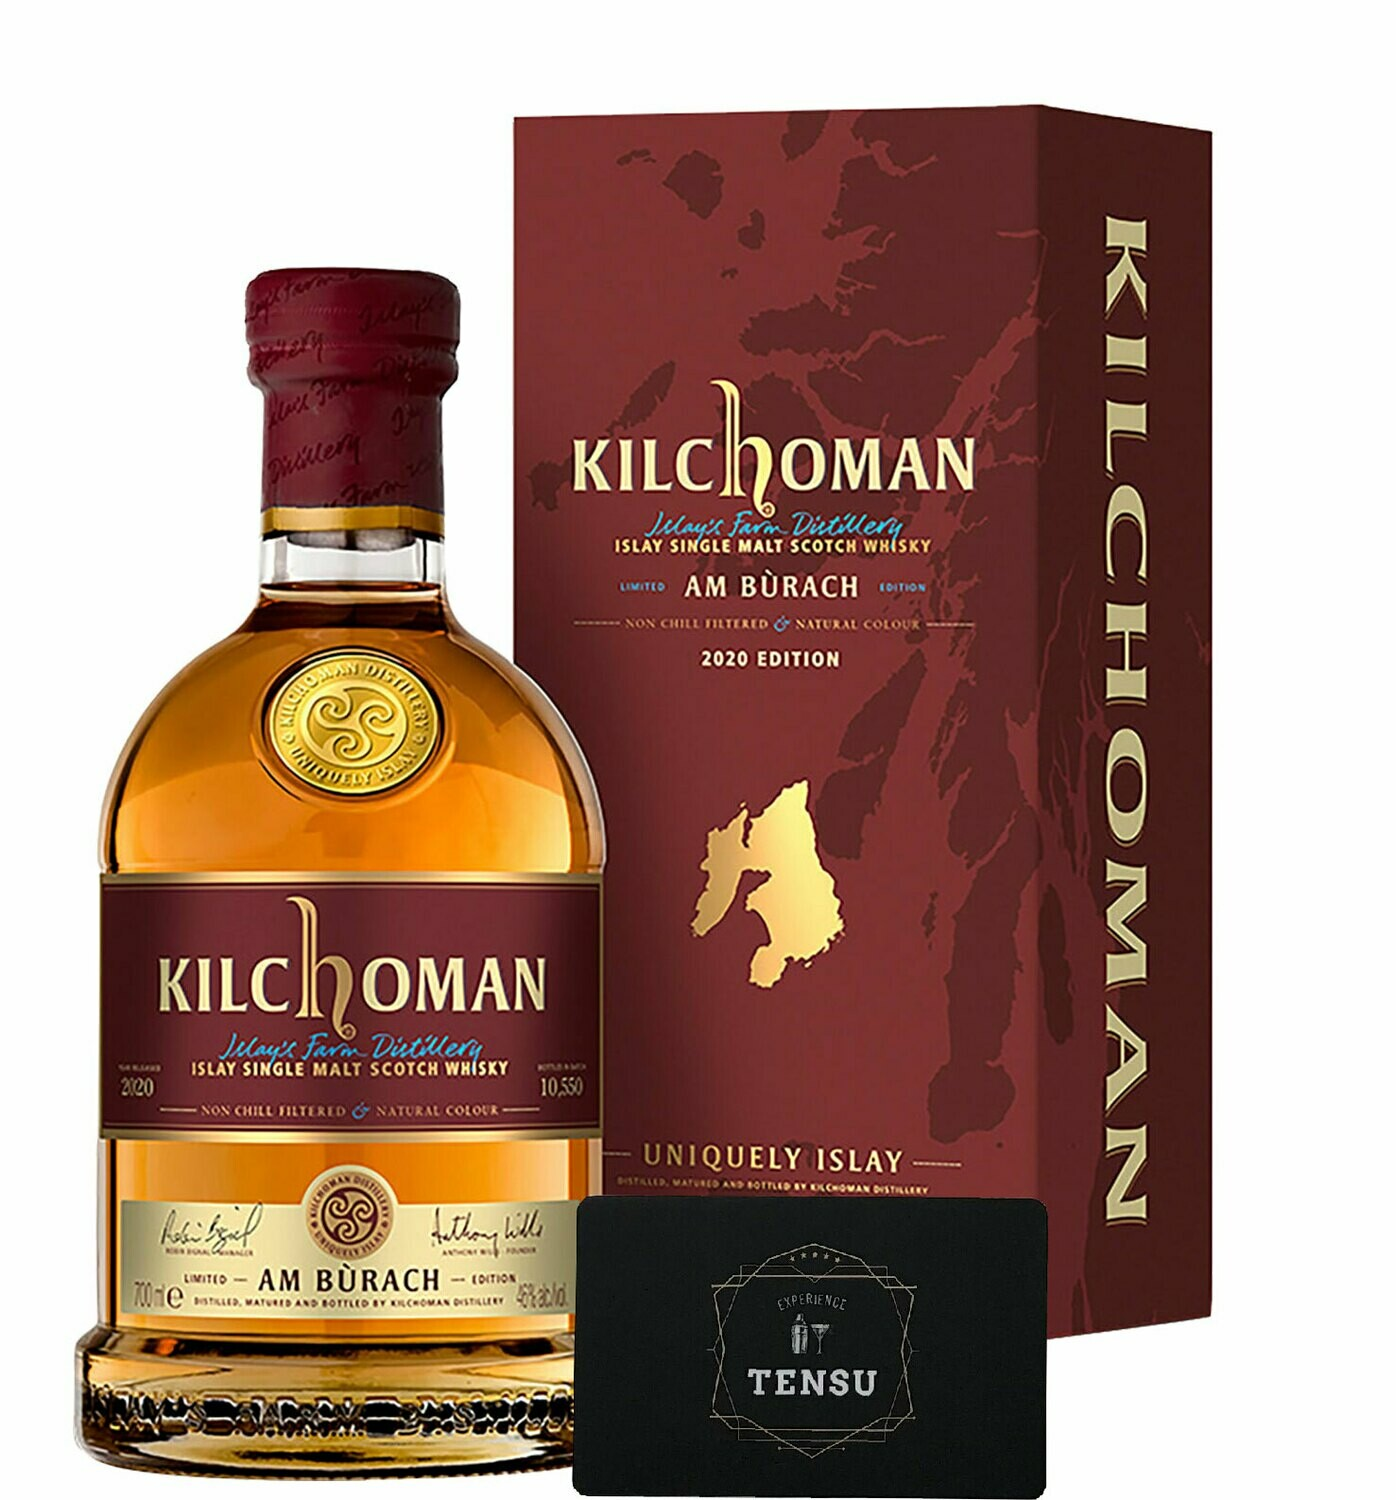 Kilchoman Am Burach [2020 Edition]